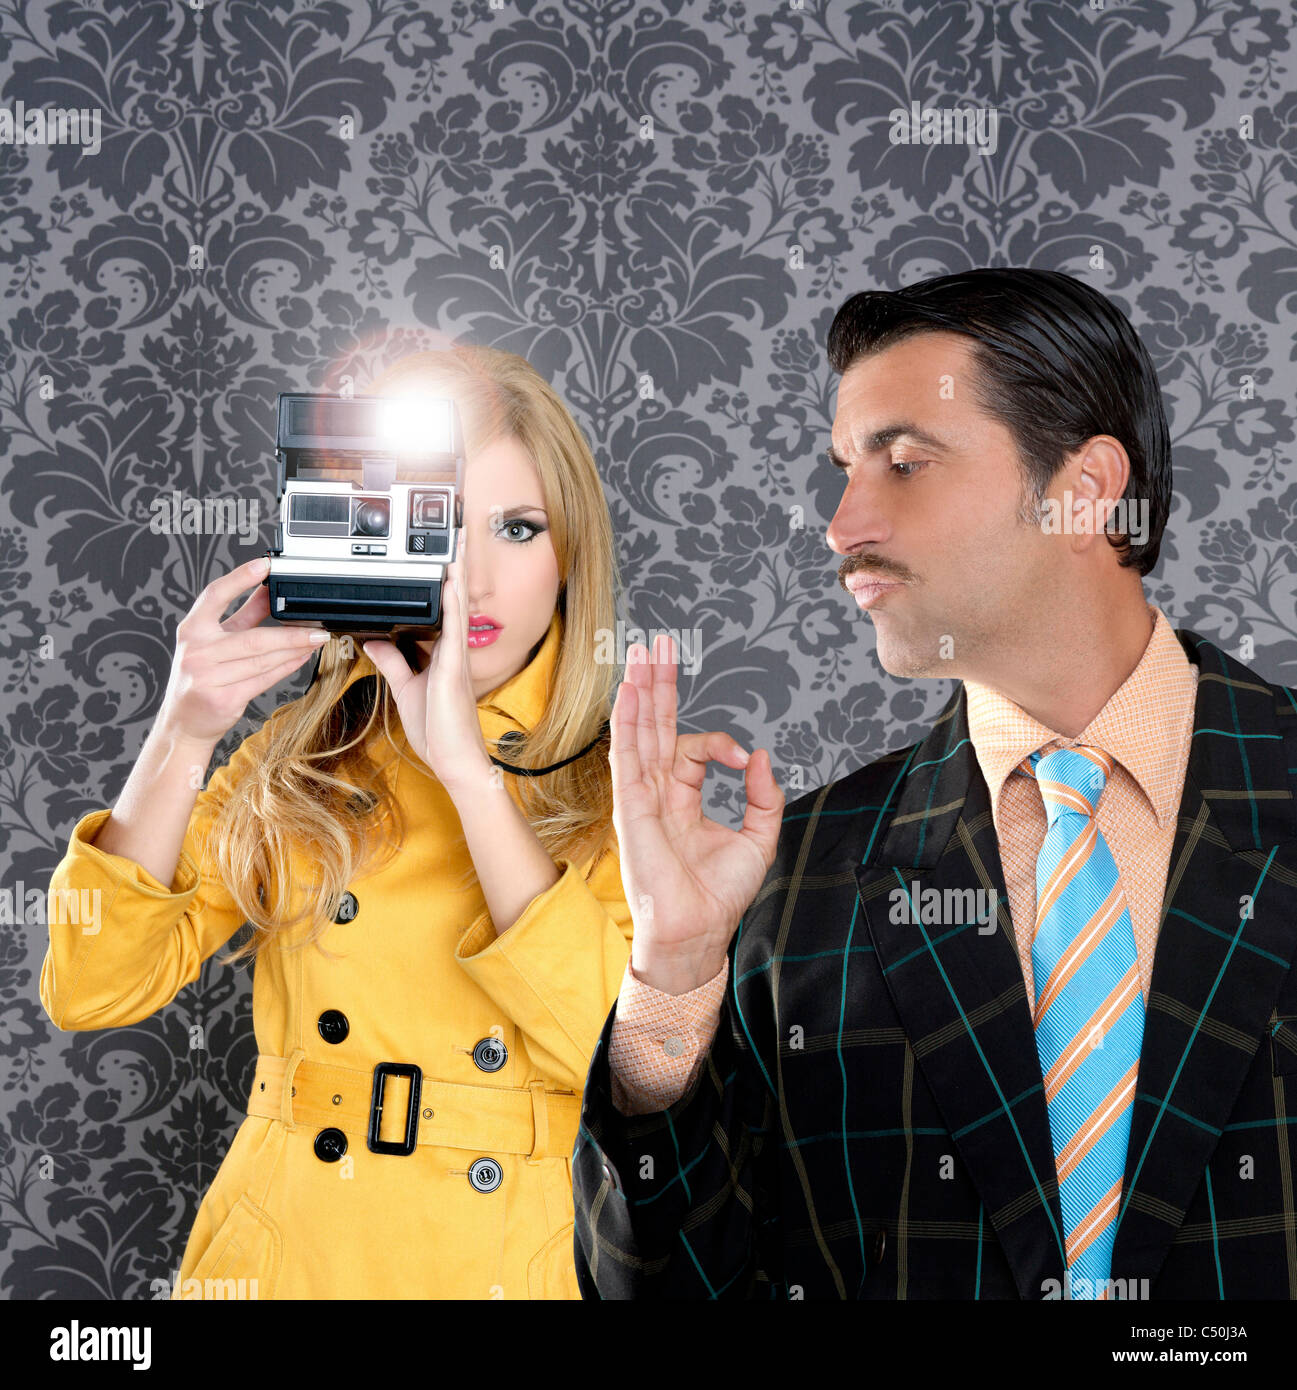 geek tacky mustache man reporter fashion girl photo shoot retro wallpaper - Stock Image